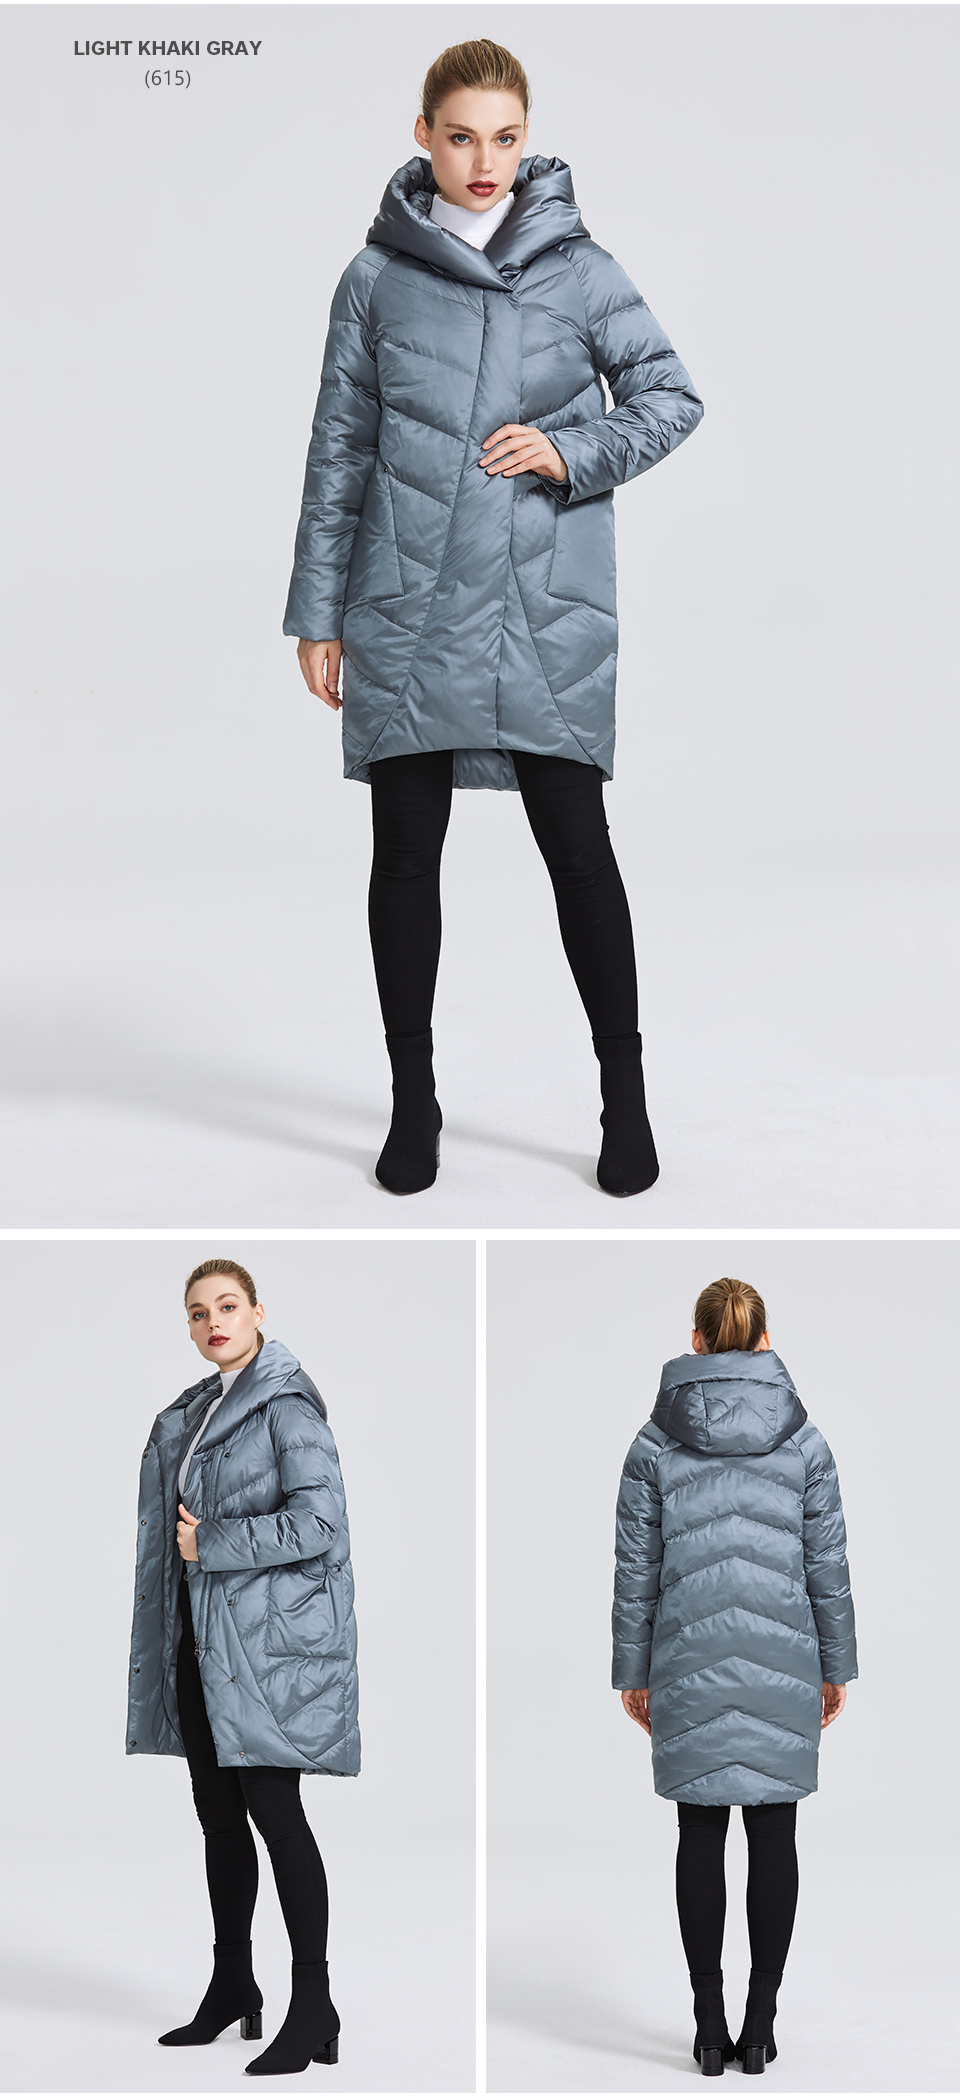 MIEGOFCE 19 Winter Jacket Women's Collection Warm Jacket With Unusual Design and Colors Winter Coats Gives Charm and Elegance 9